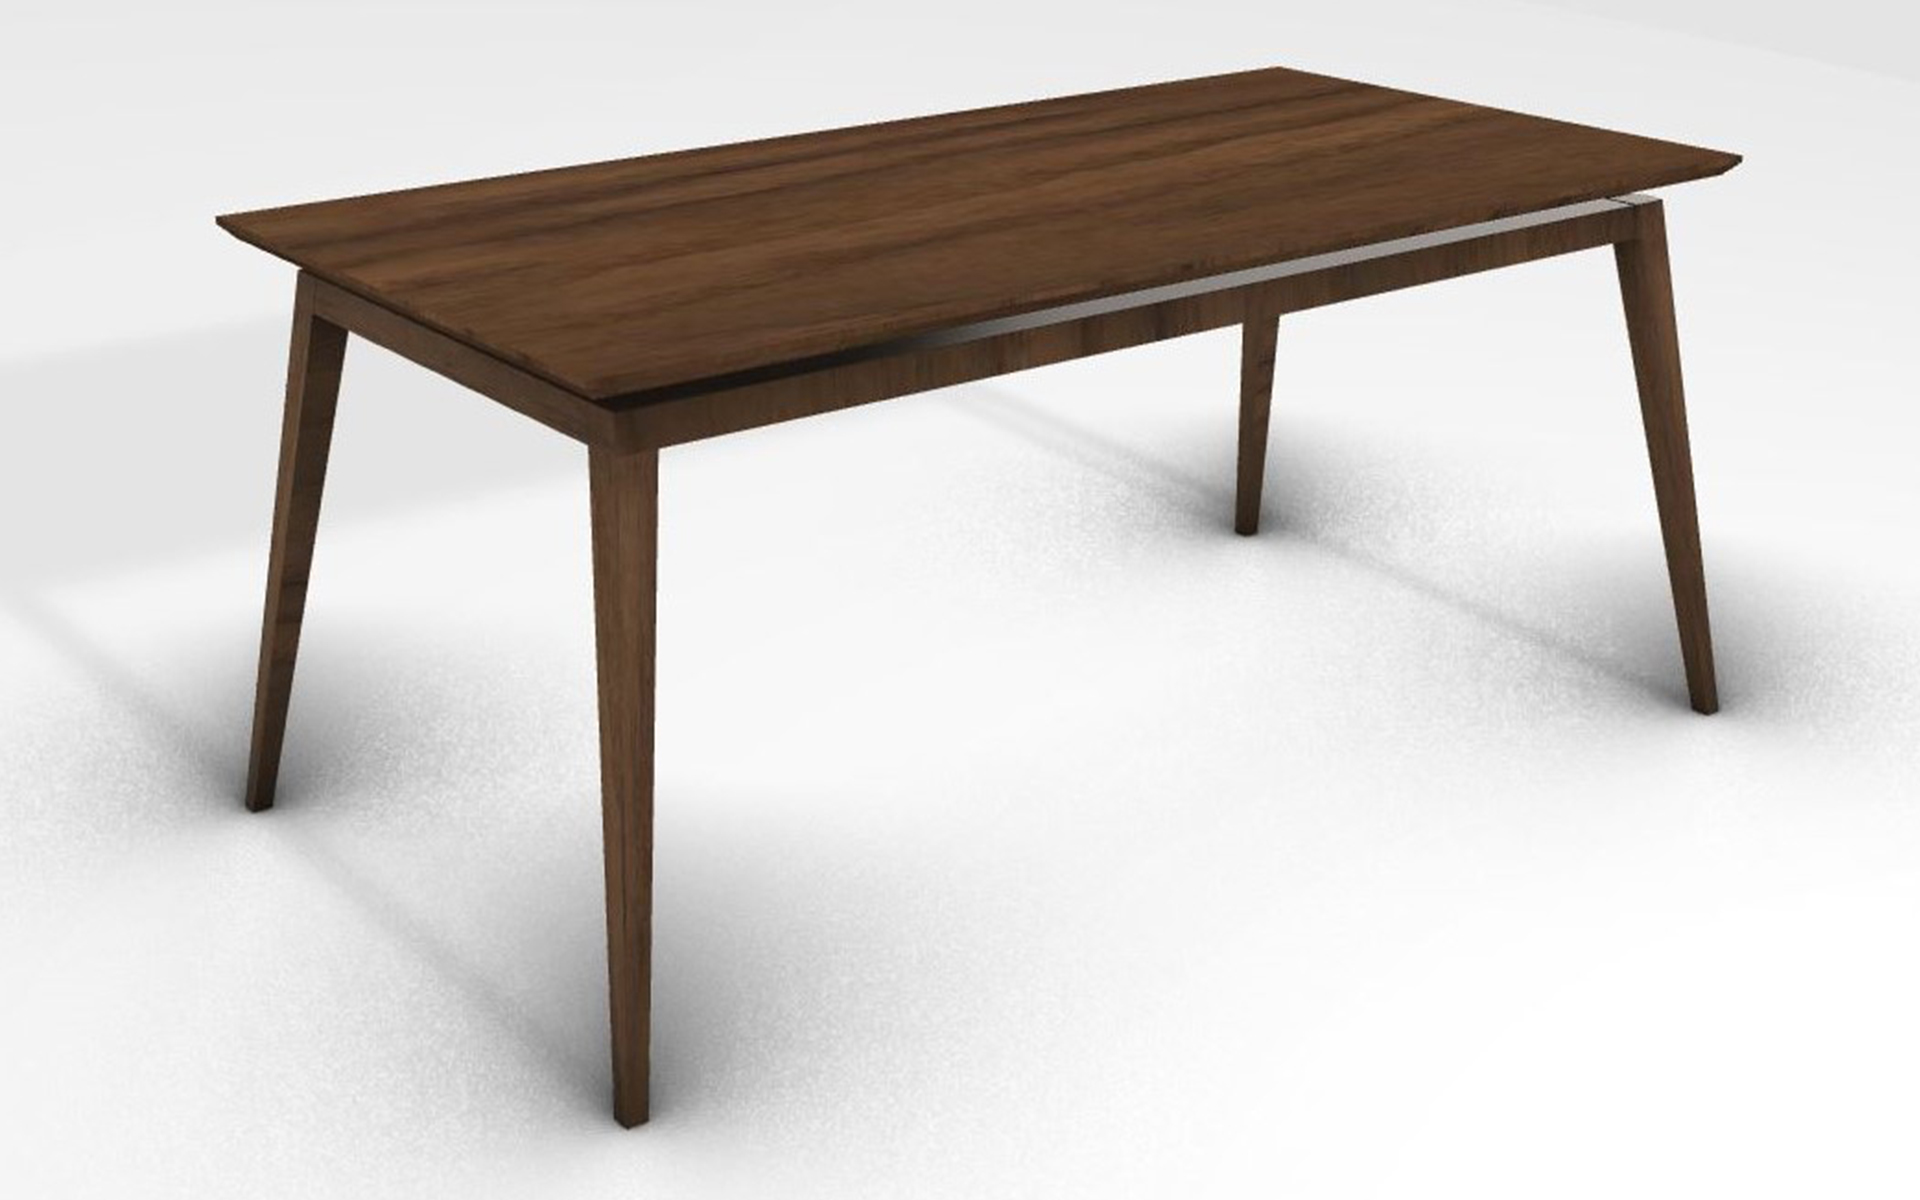 Table LEVI 01w design, made in france